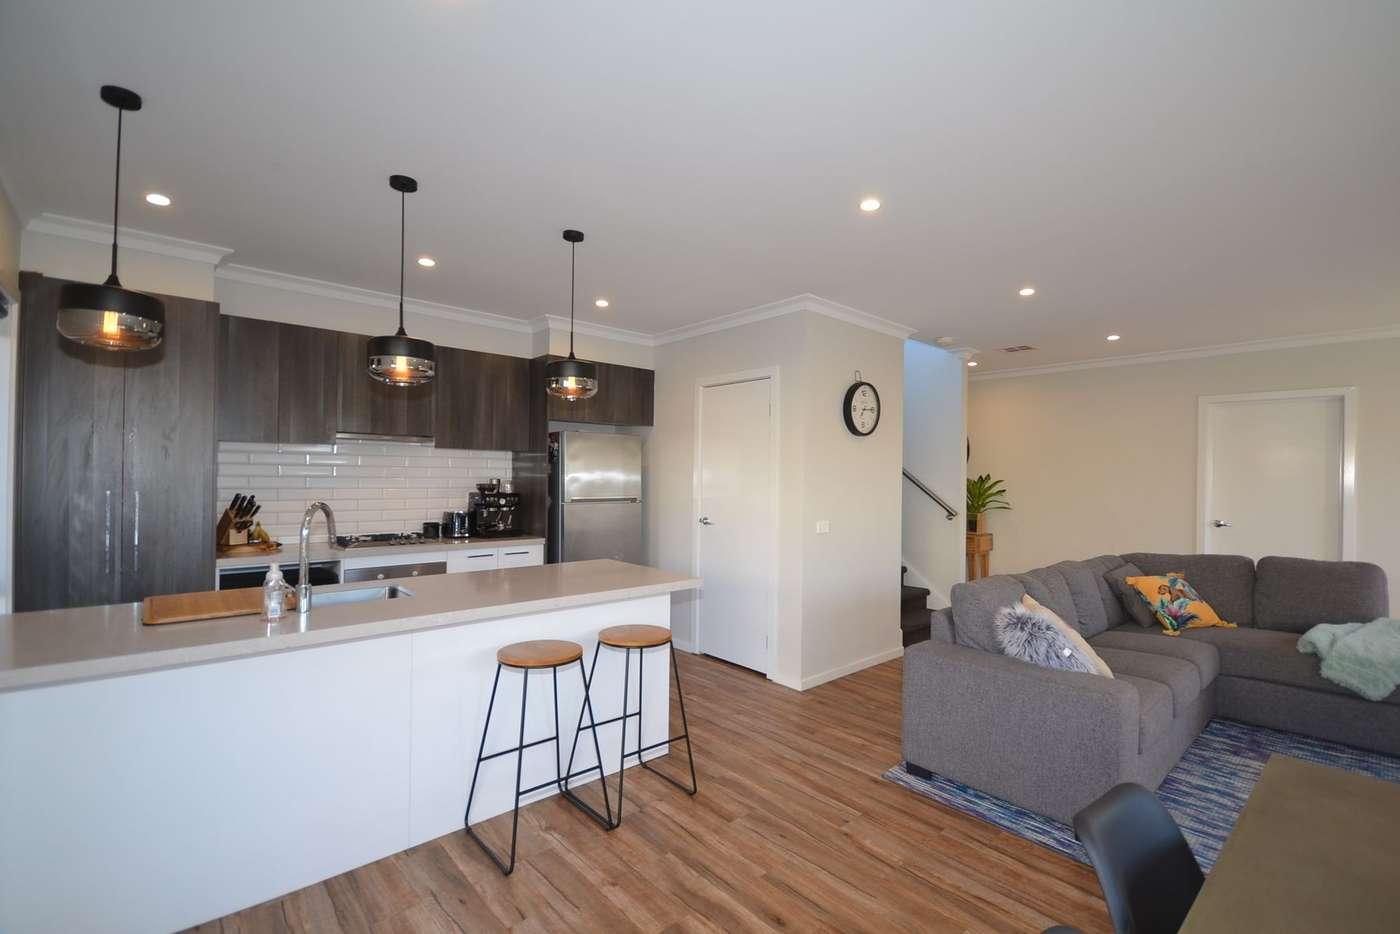 Main view of Homely house listing, 3/35 Sternberg Street, Kennington VIC 3550